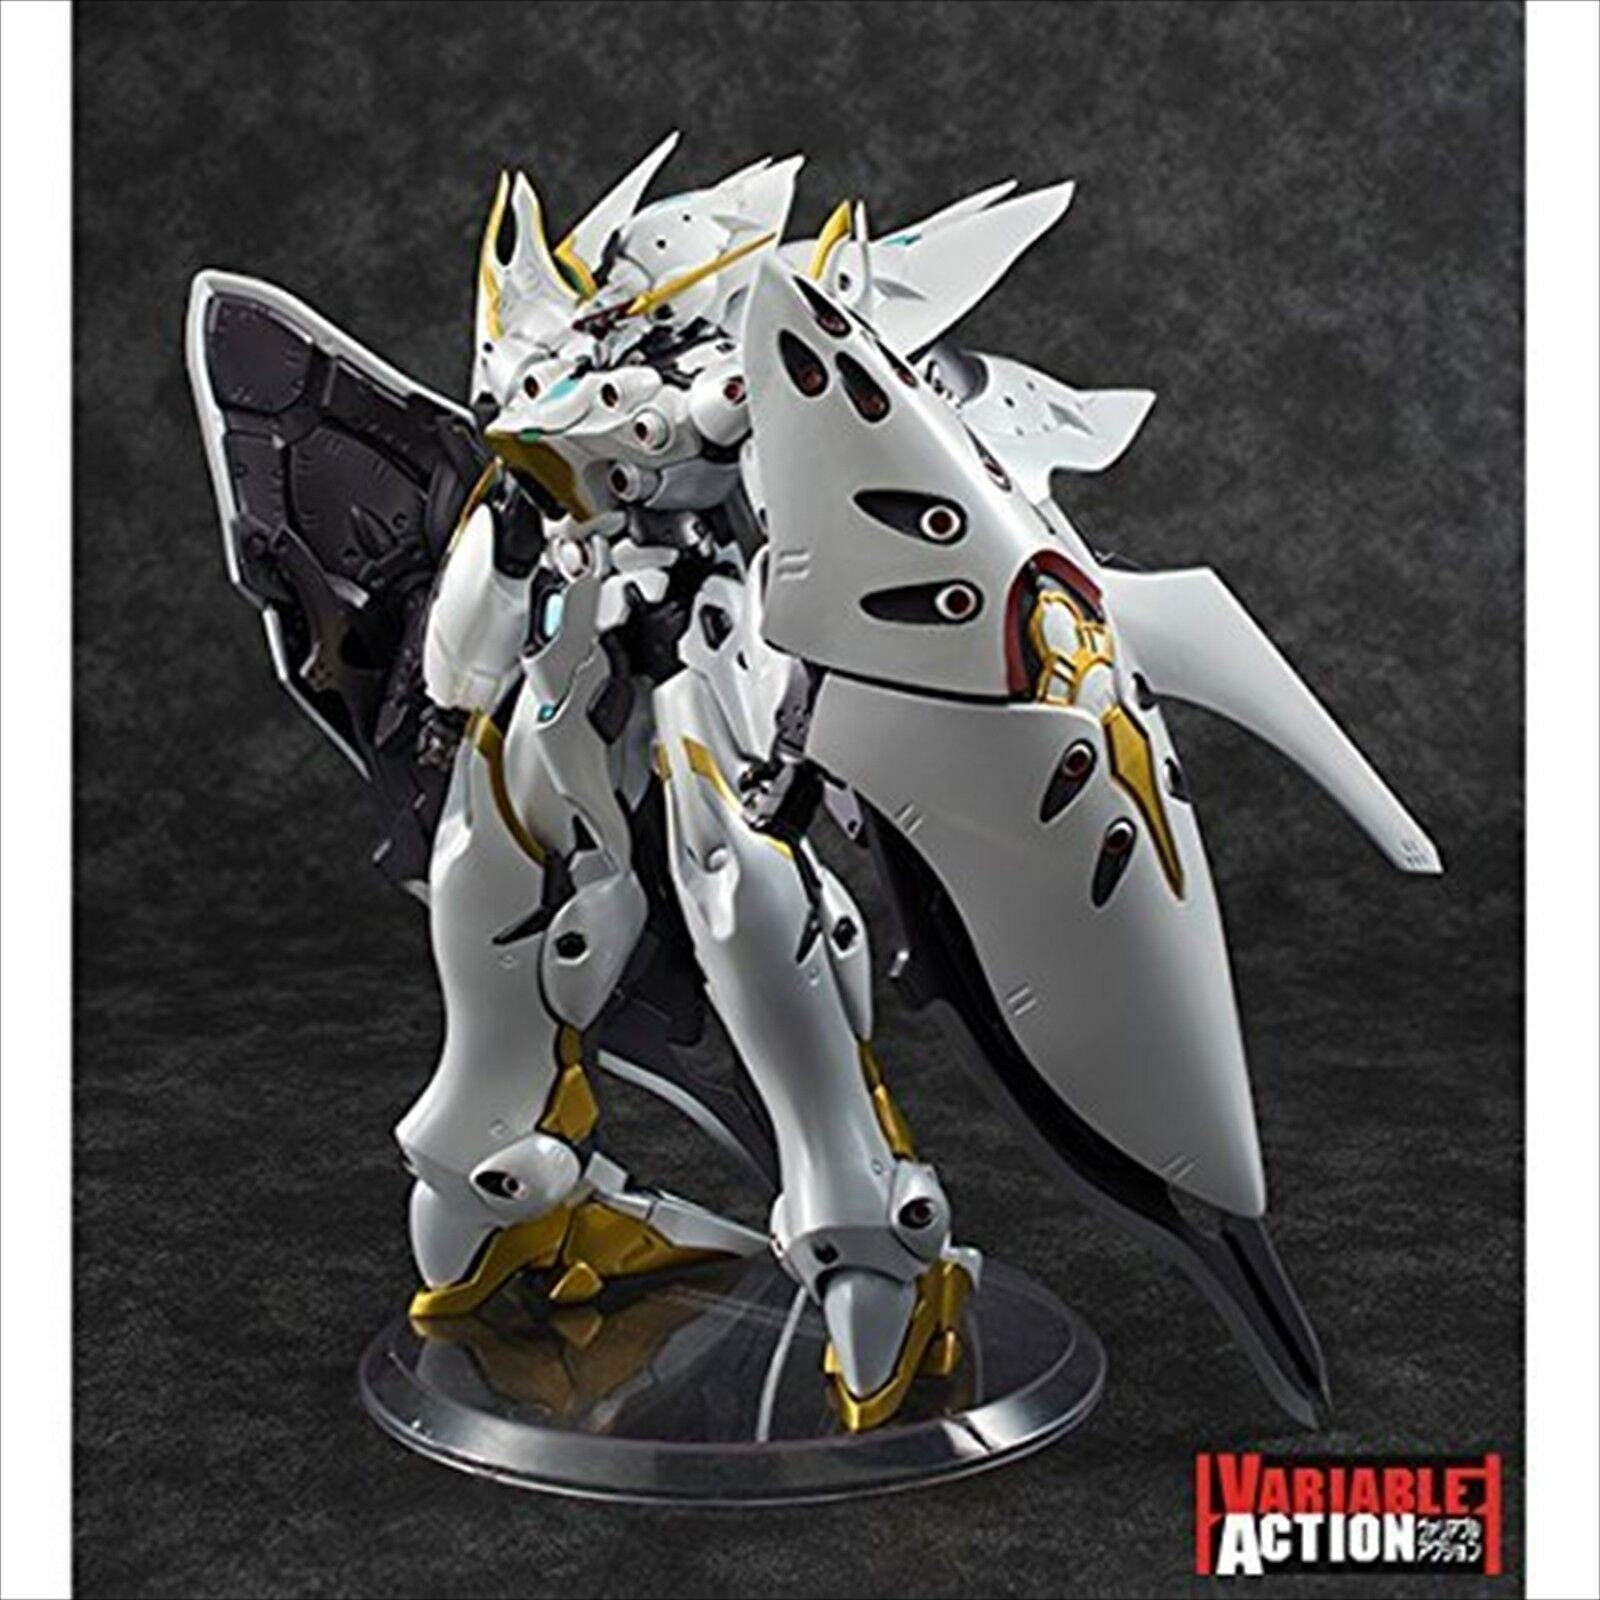 NEW Aldnoa Zero Tarsis Variable action Total height about 16 cm Figure